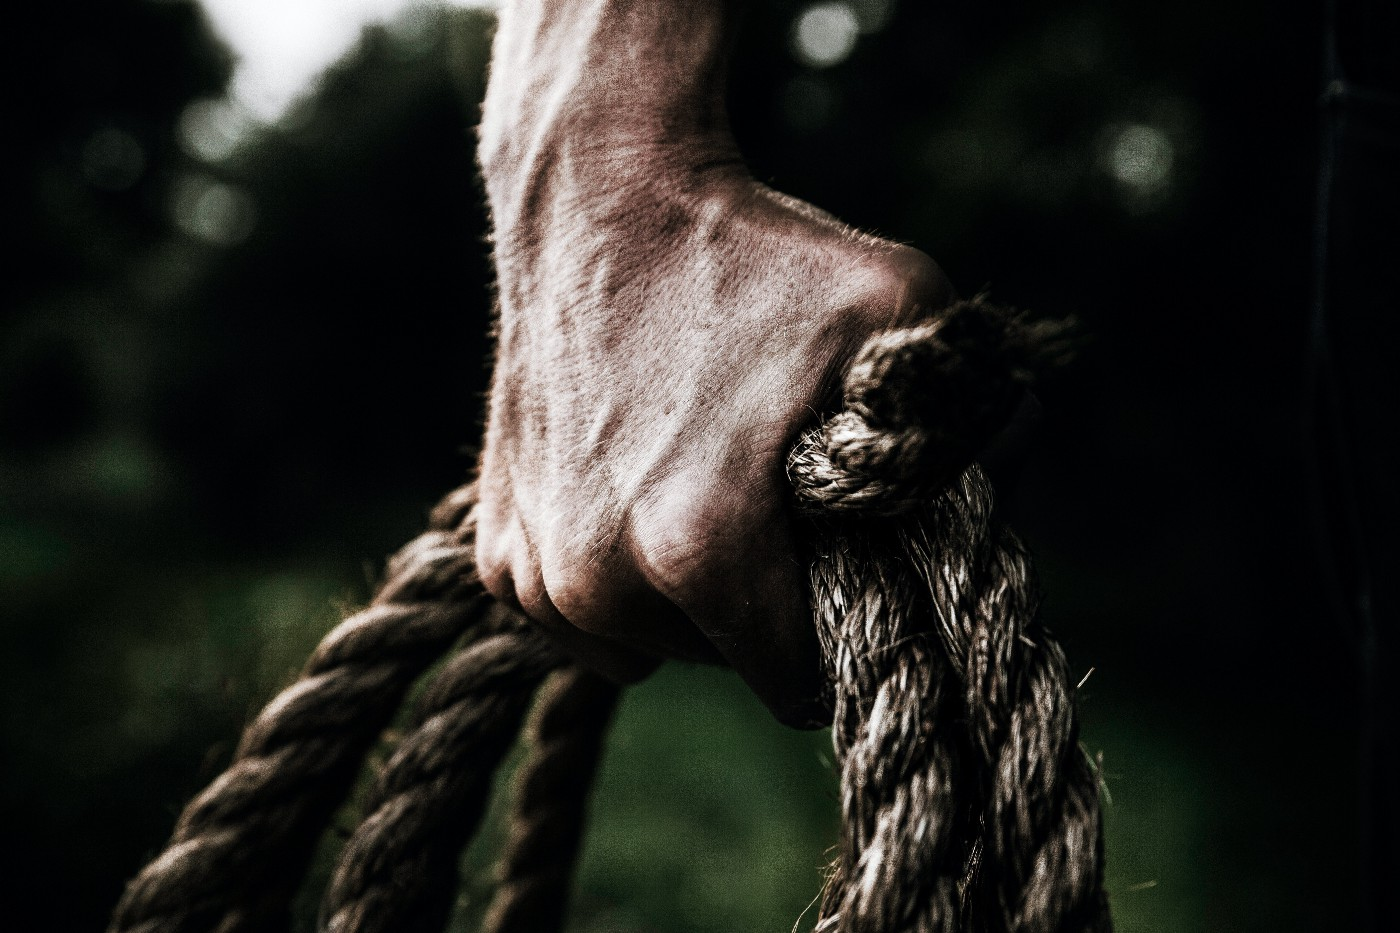 Tough man holding a rope in his hand.